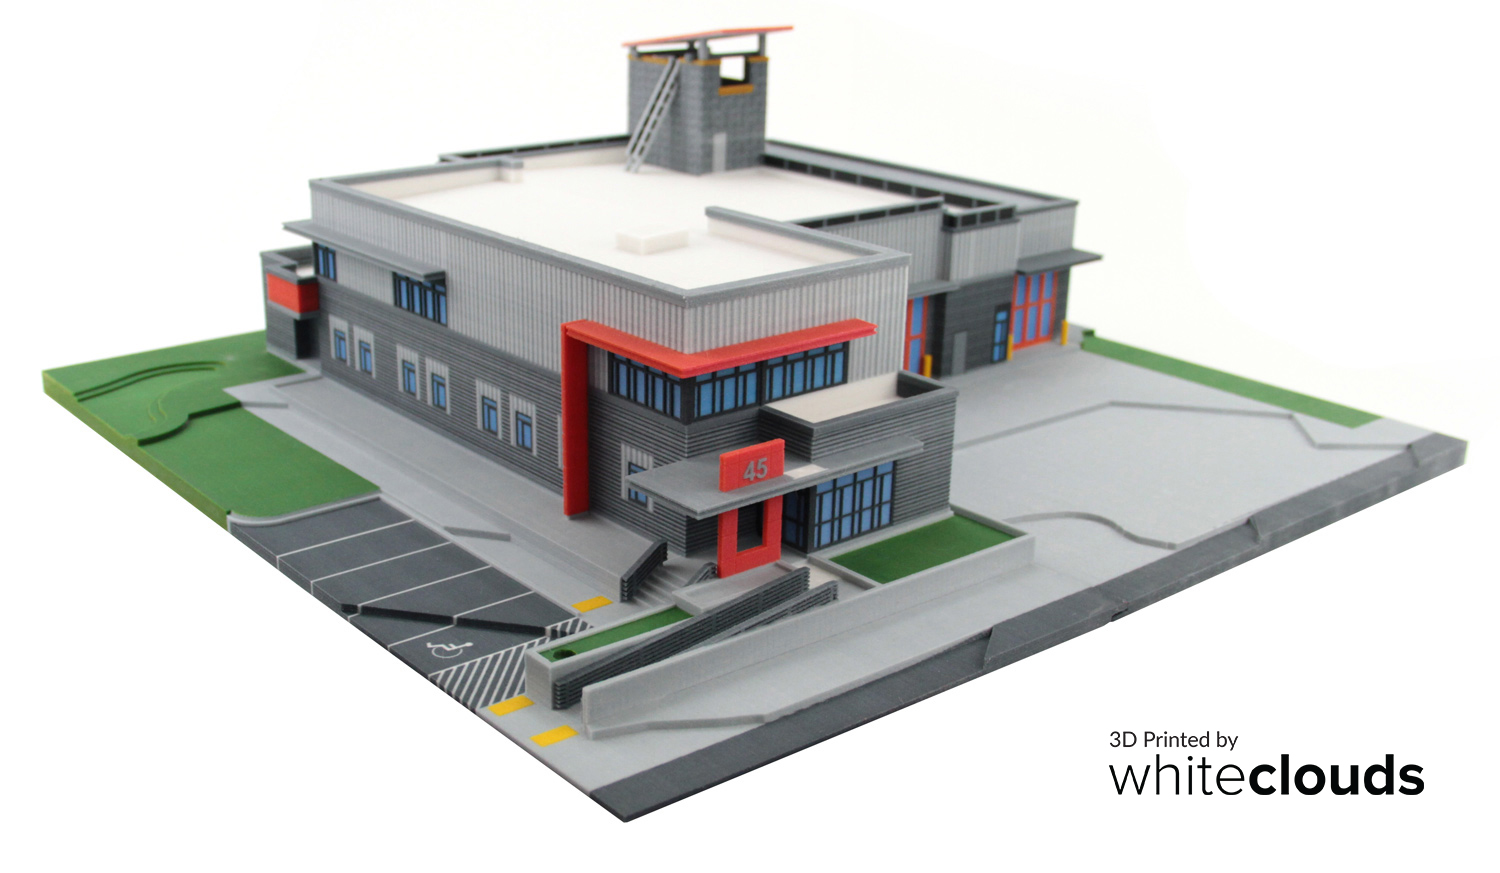 3D-Printed-WhiteClouds-Fire-Station-Architectural-Fire-Station-1.jpg